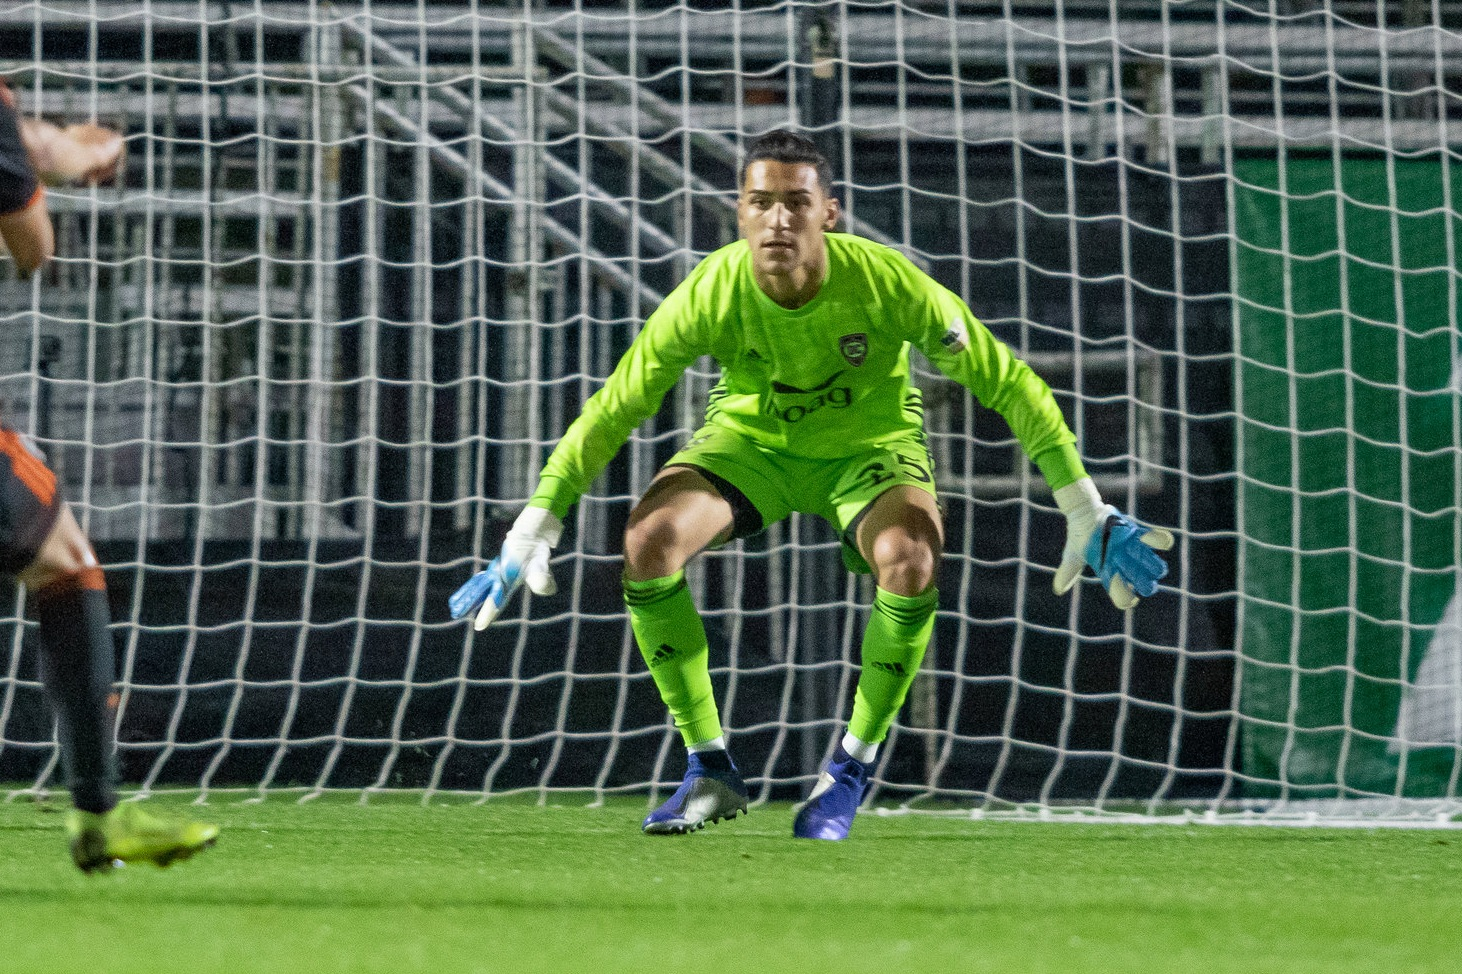 Orange County SC keeper Aaron Cervantes prepares for a save on his professional debut. | Photo courtesy of Orange County SC